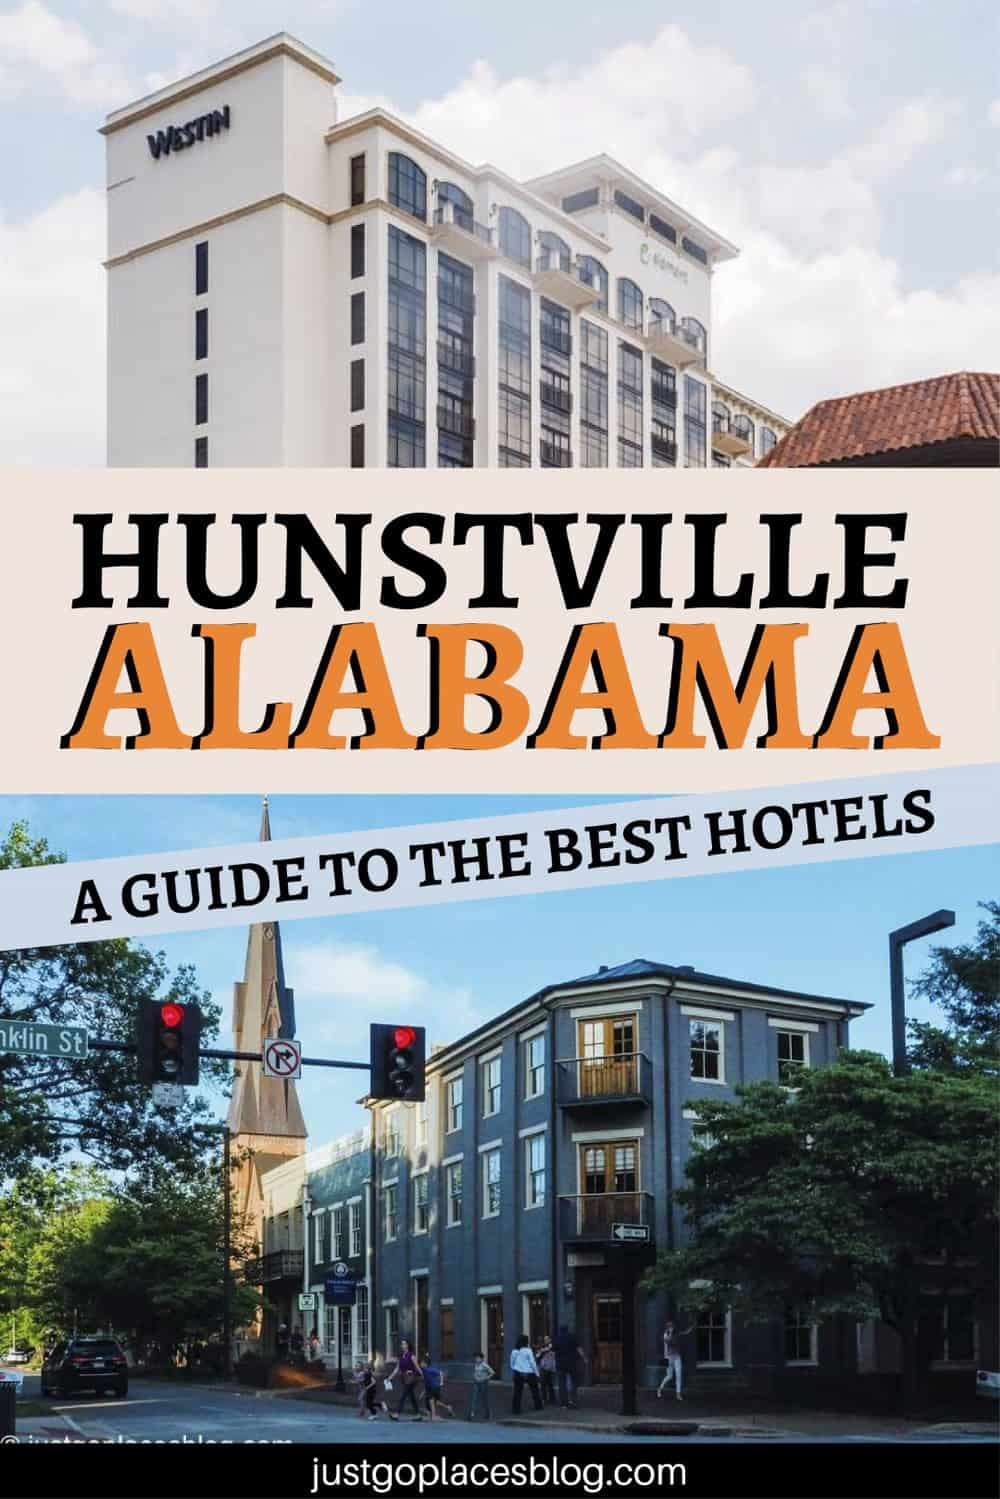 Huntsville Alabama A Guide To The Best Hotels